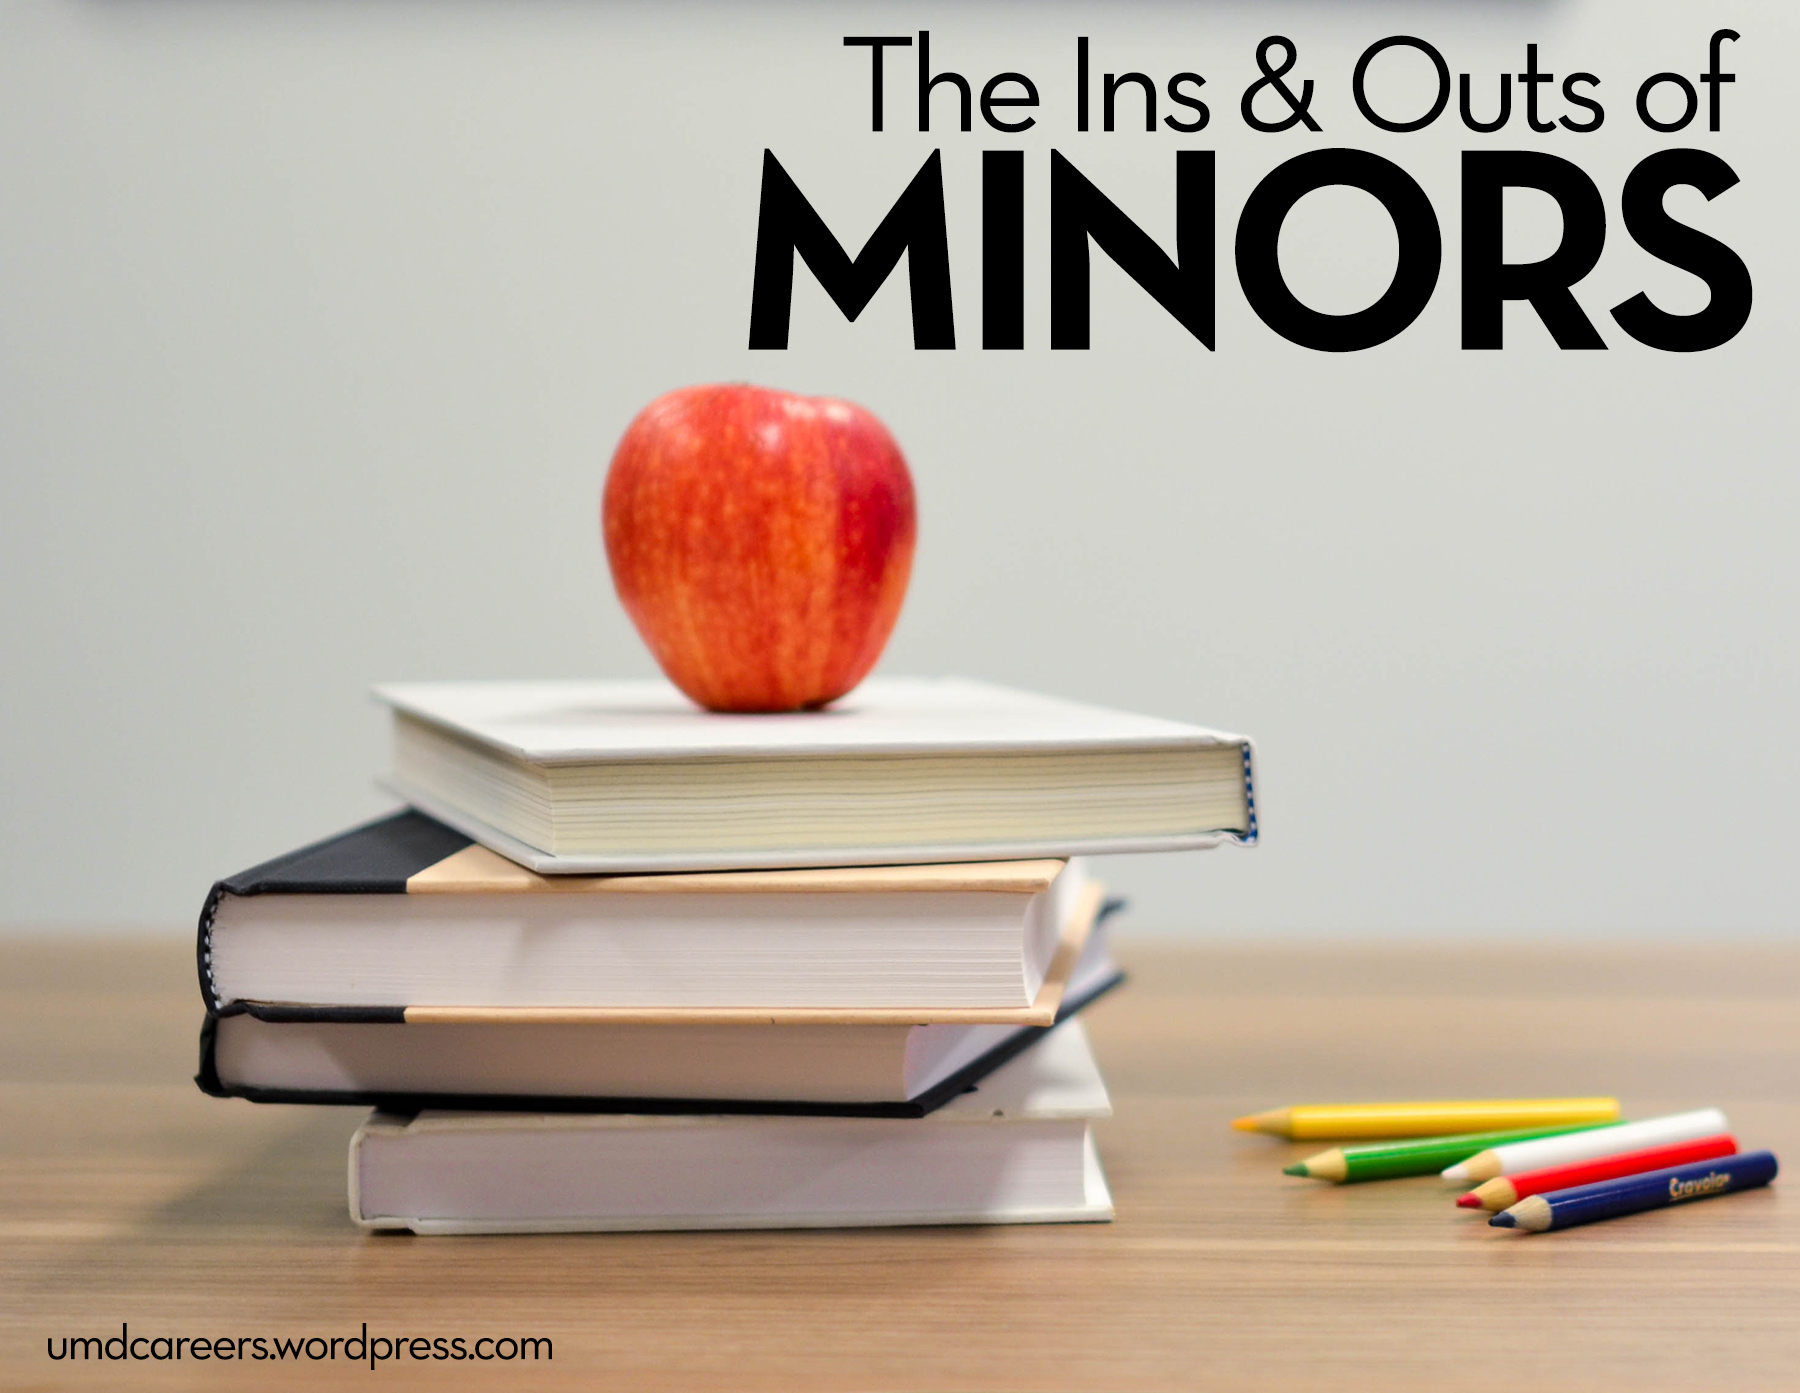 The Ins and outs of minors. photo of book pile with apple